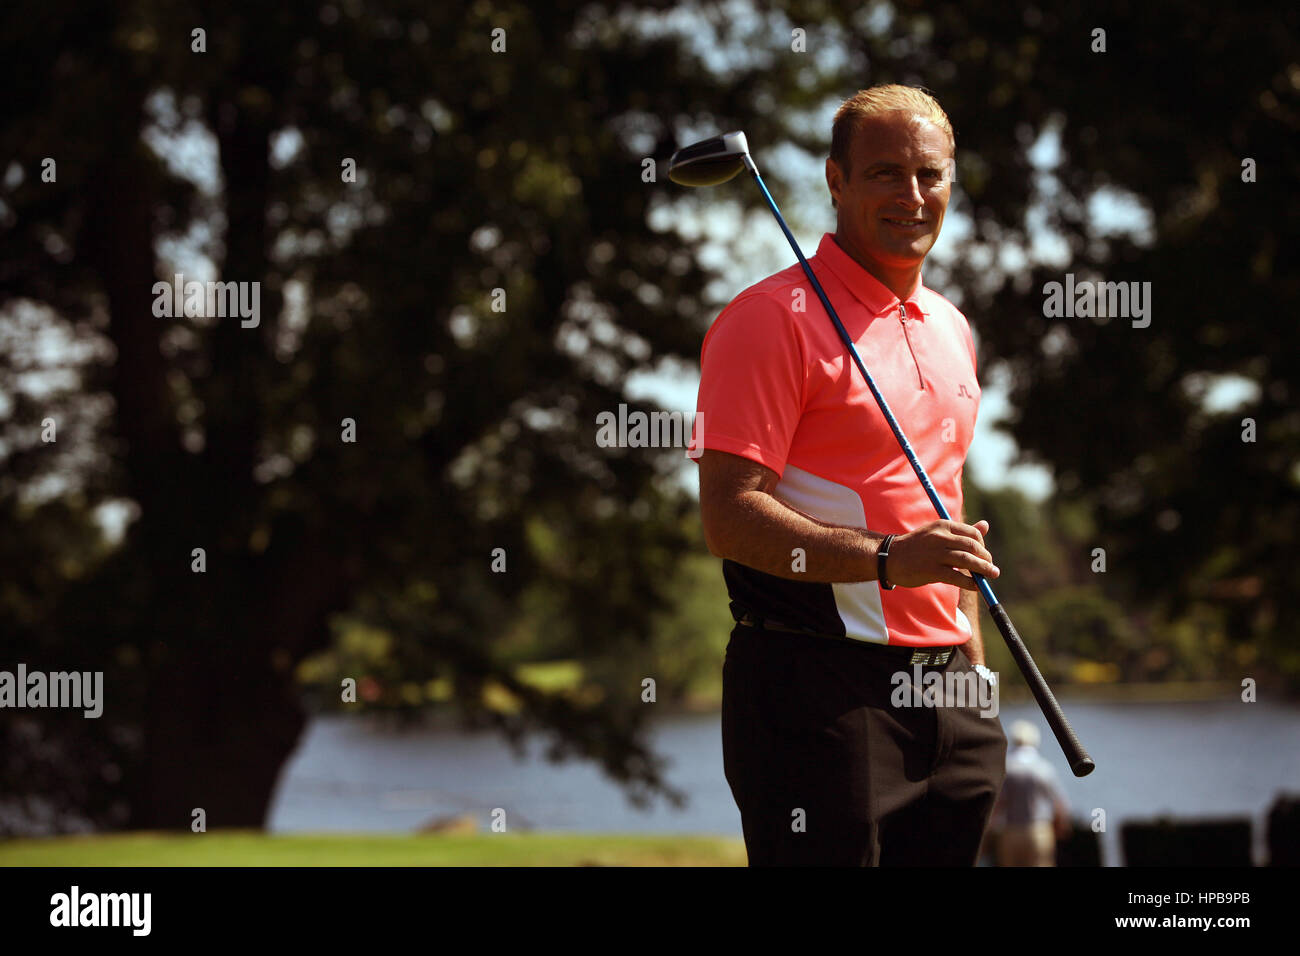 Lee Sharpe charity golf day at Mere Golf and Country Club.  Clayton Blackmore. Picture: Chris Bull - Stock Image